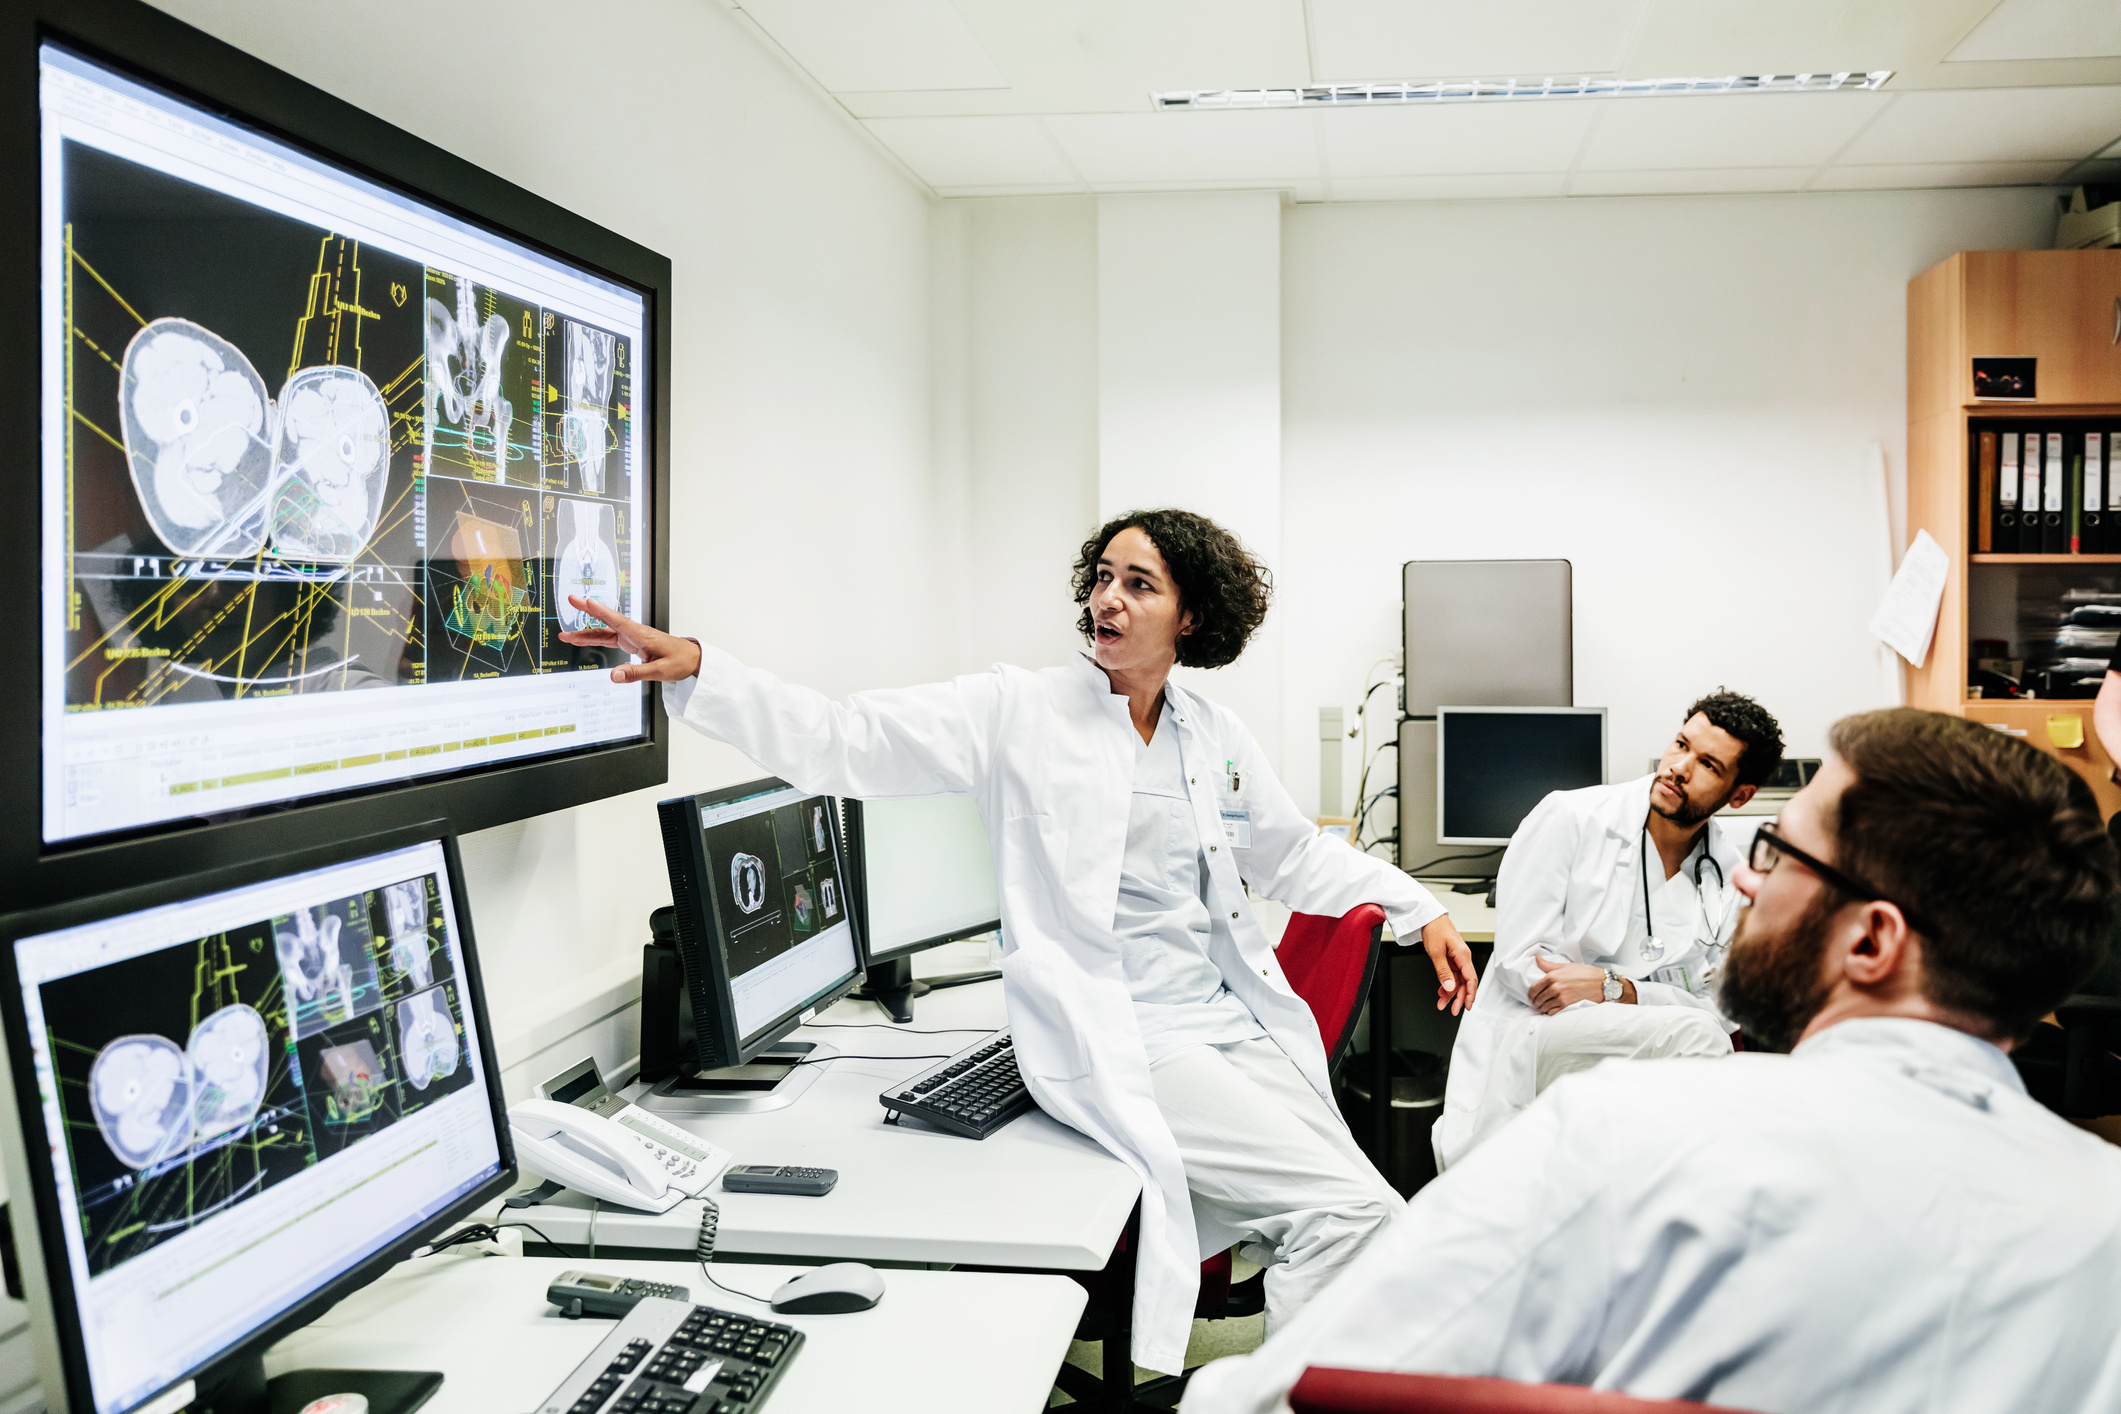 Health care: Information tech must catch up to medical marvels